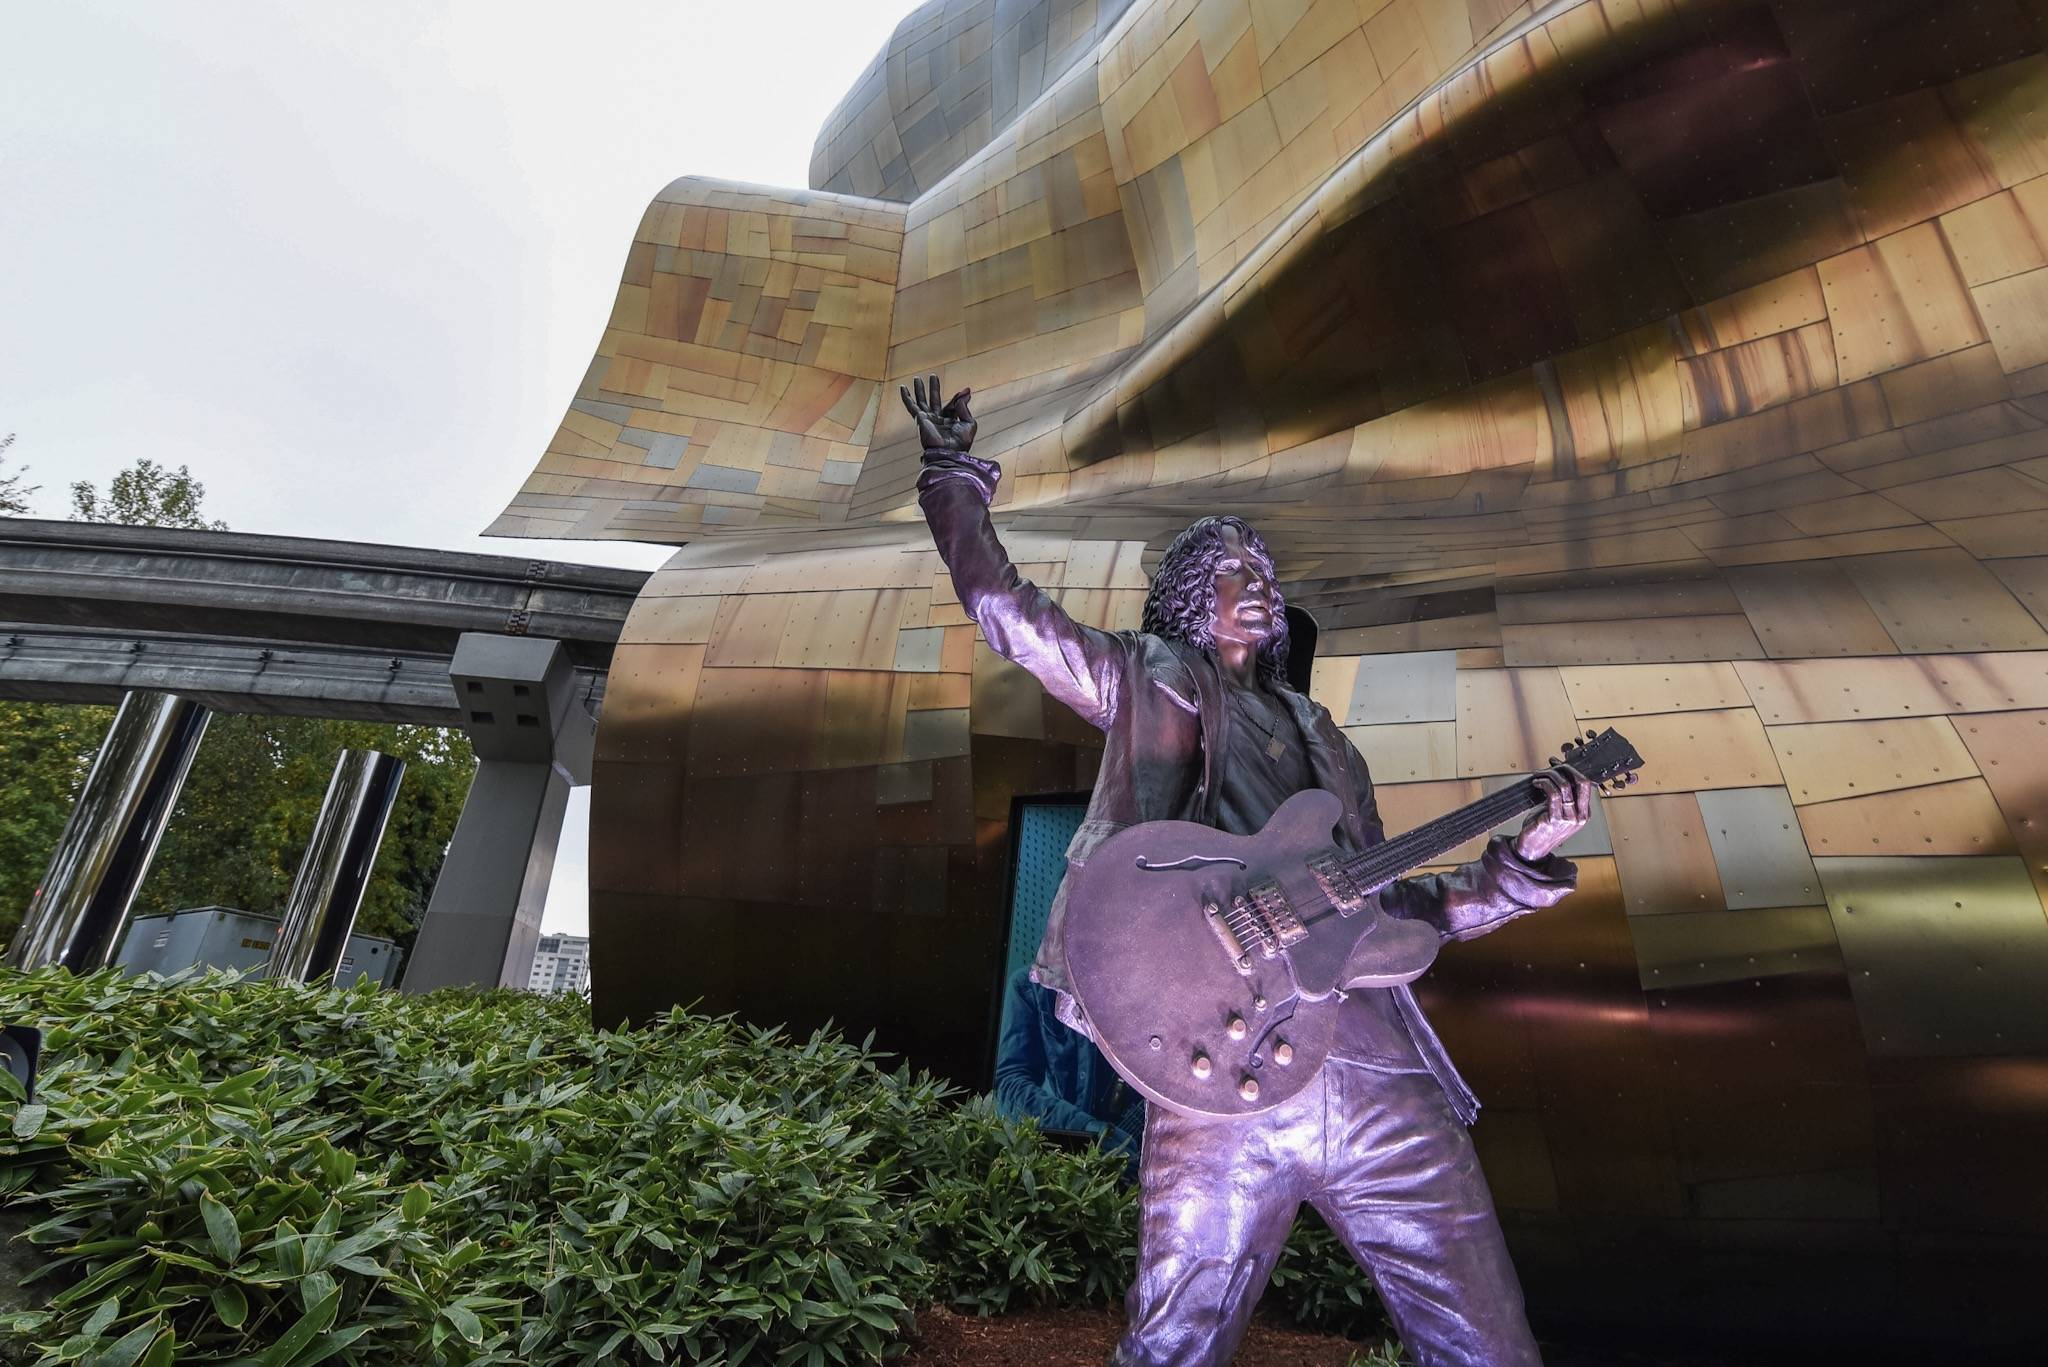 The new Chris Cornell statue resides outside of MoPop. Photo courtesy MoPop